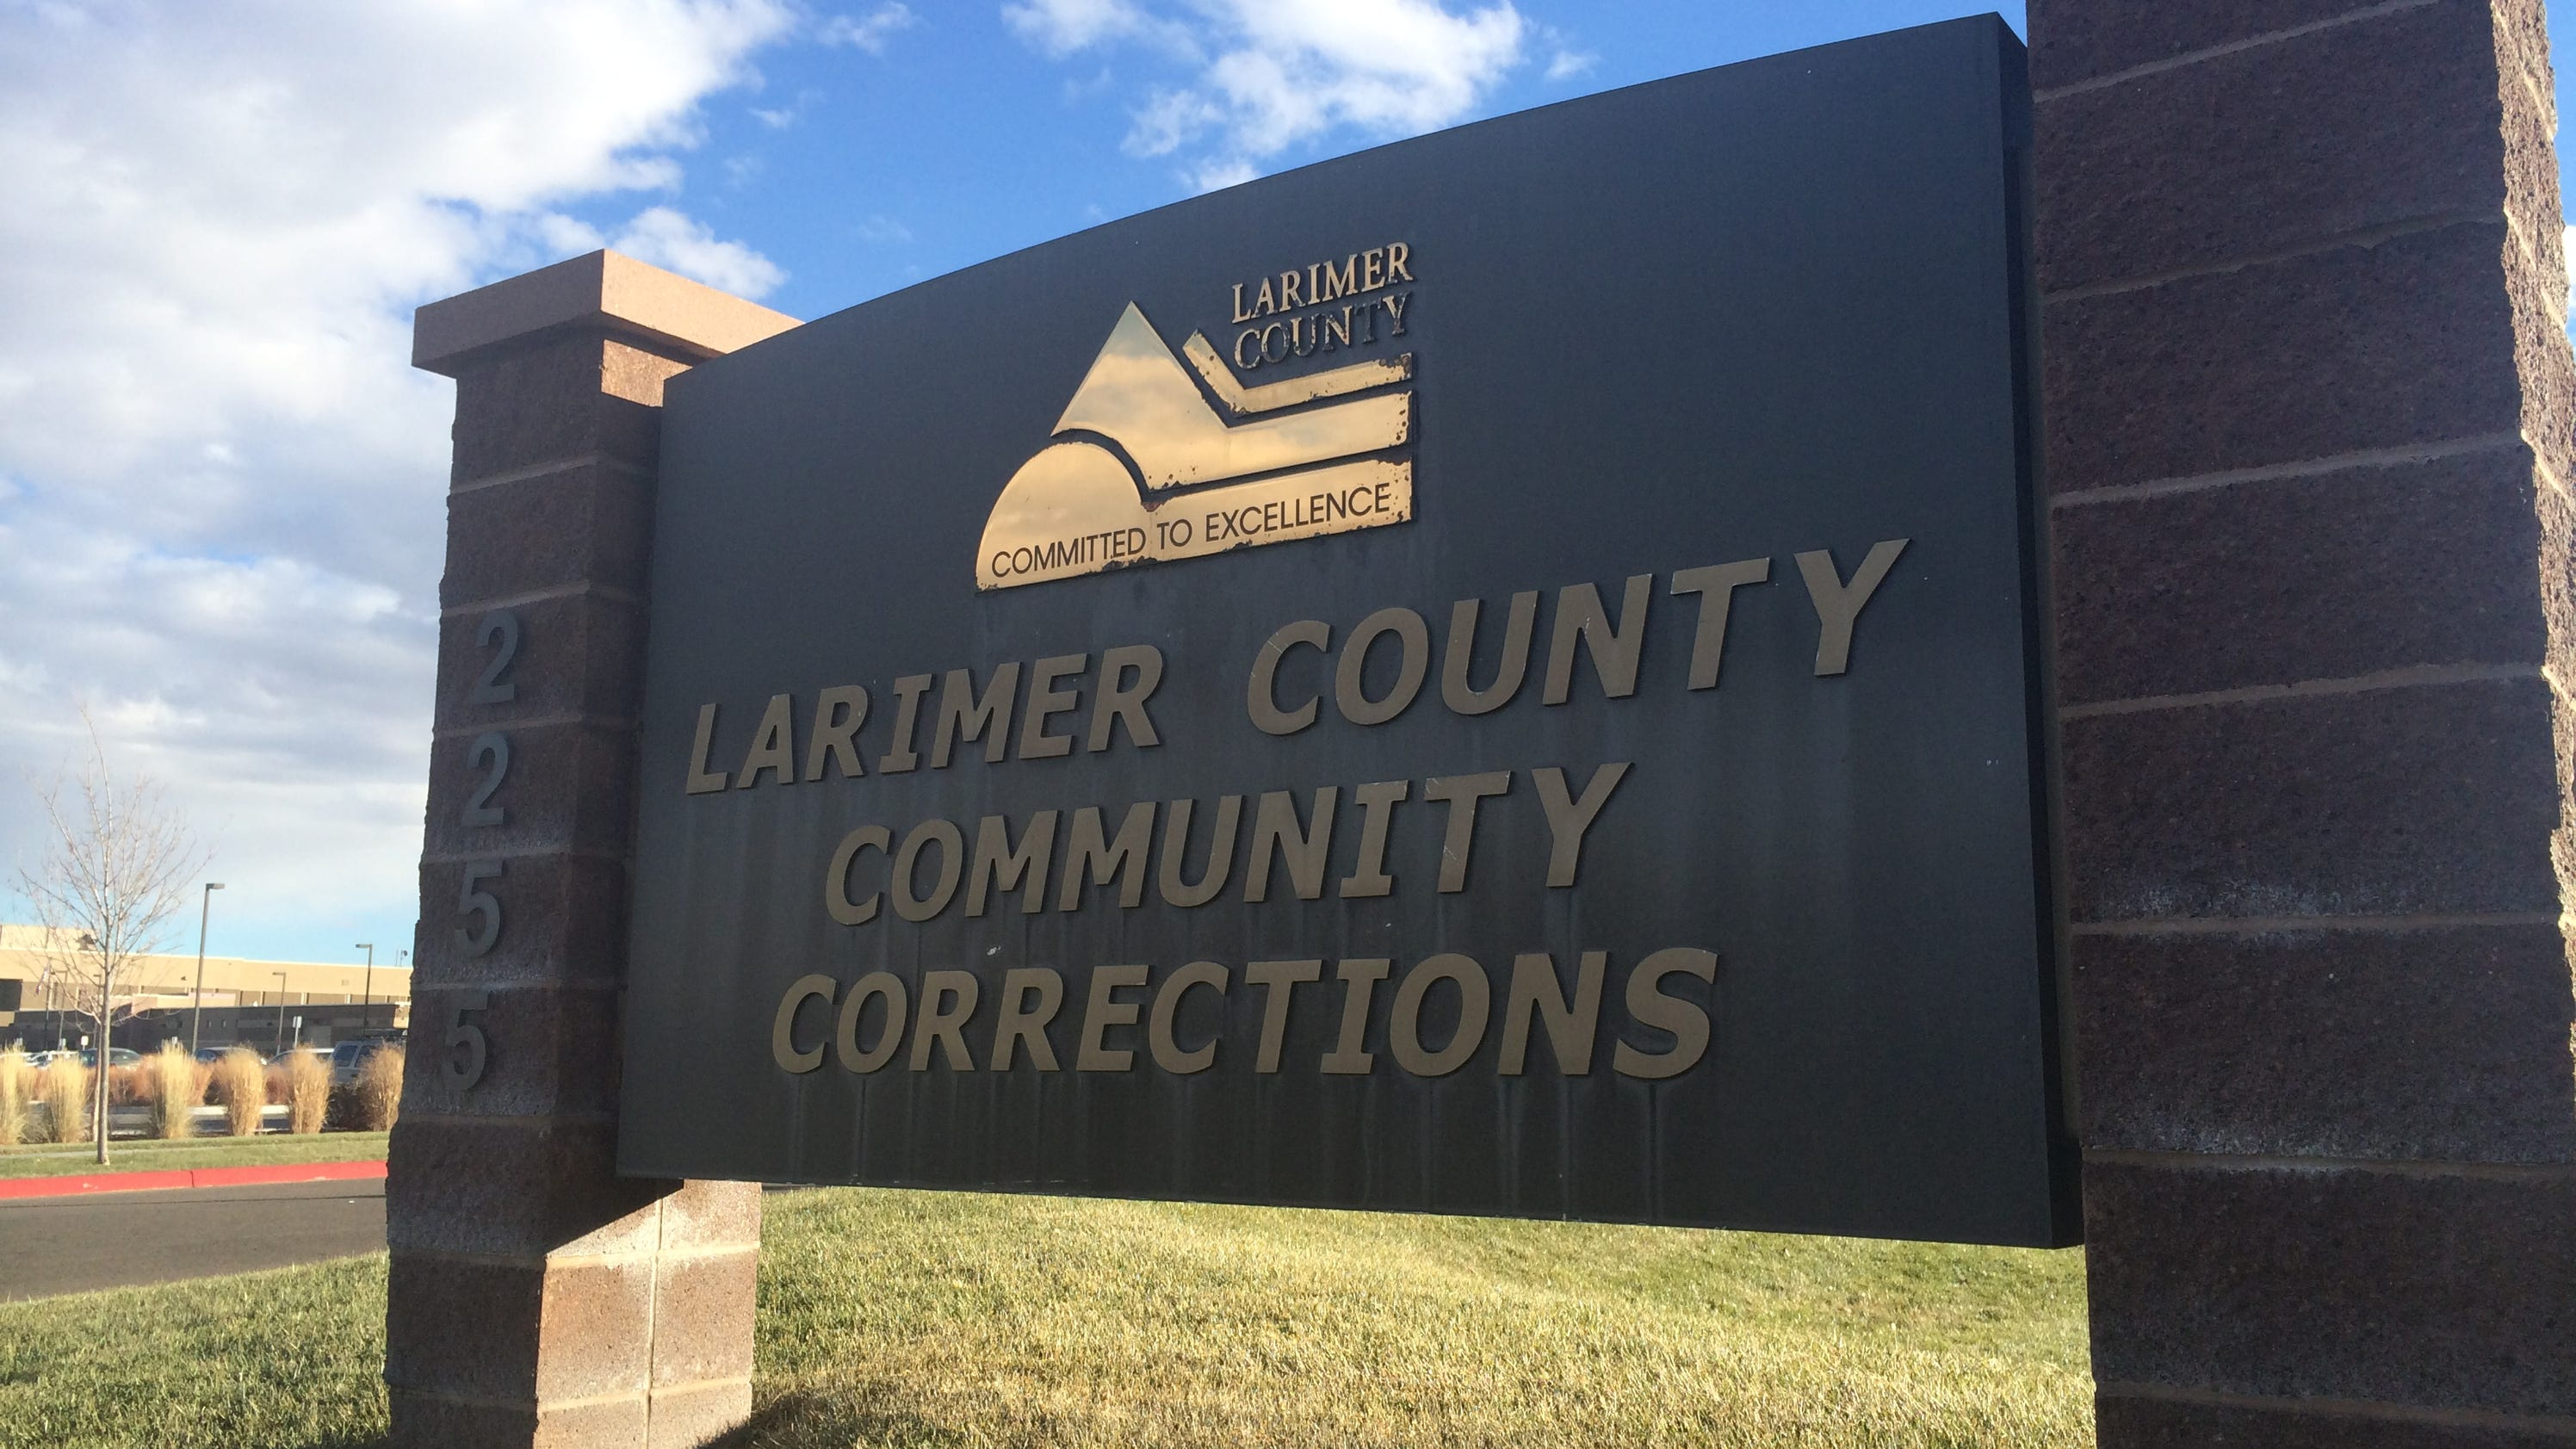 community correction Kansas community corrections offices 2nd judicial district (shawnee county community corrections) rebecca cartmill, director 02d 712 s kansas ave, 3rd fltopeka, ks 66603.